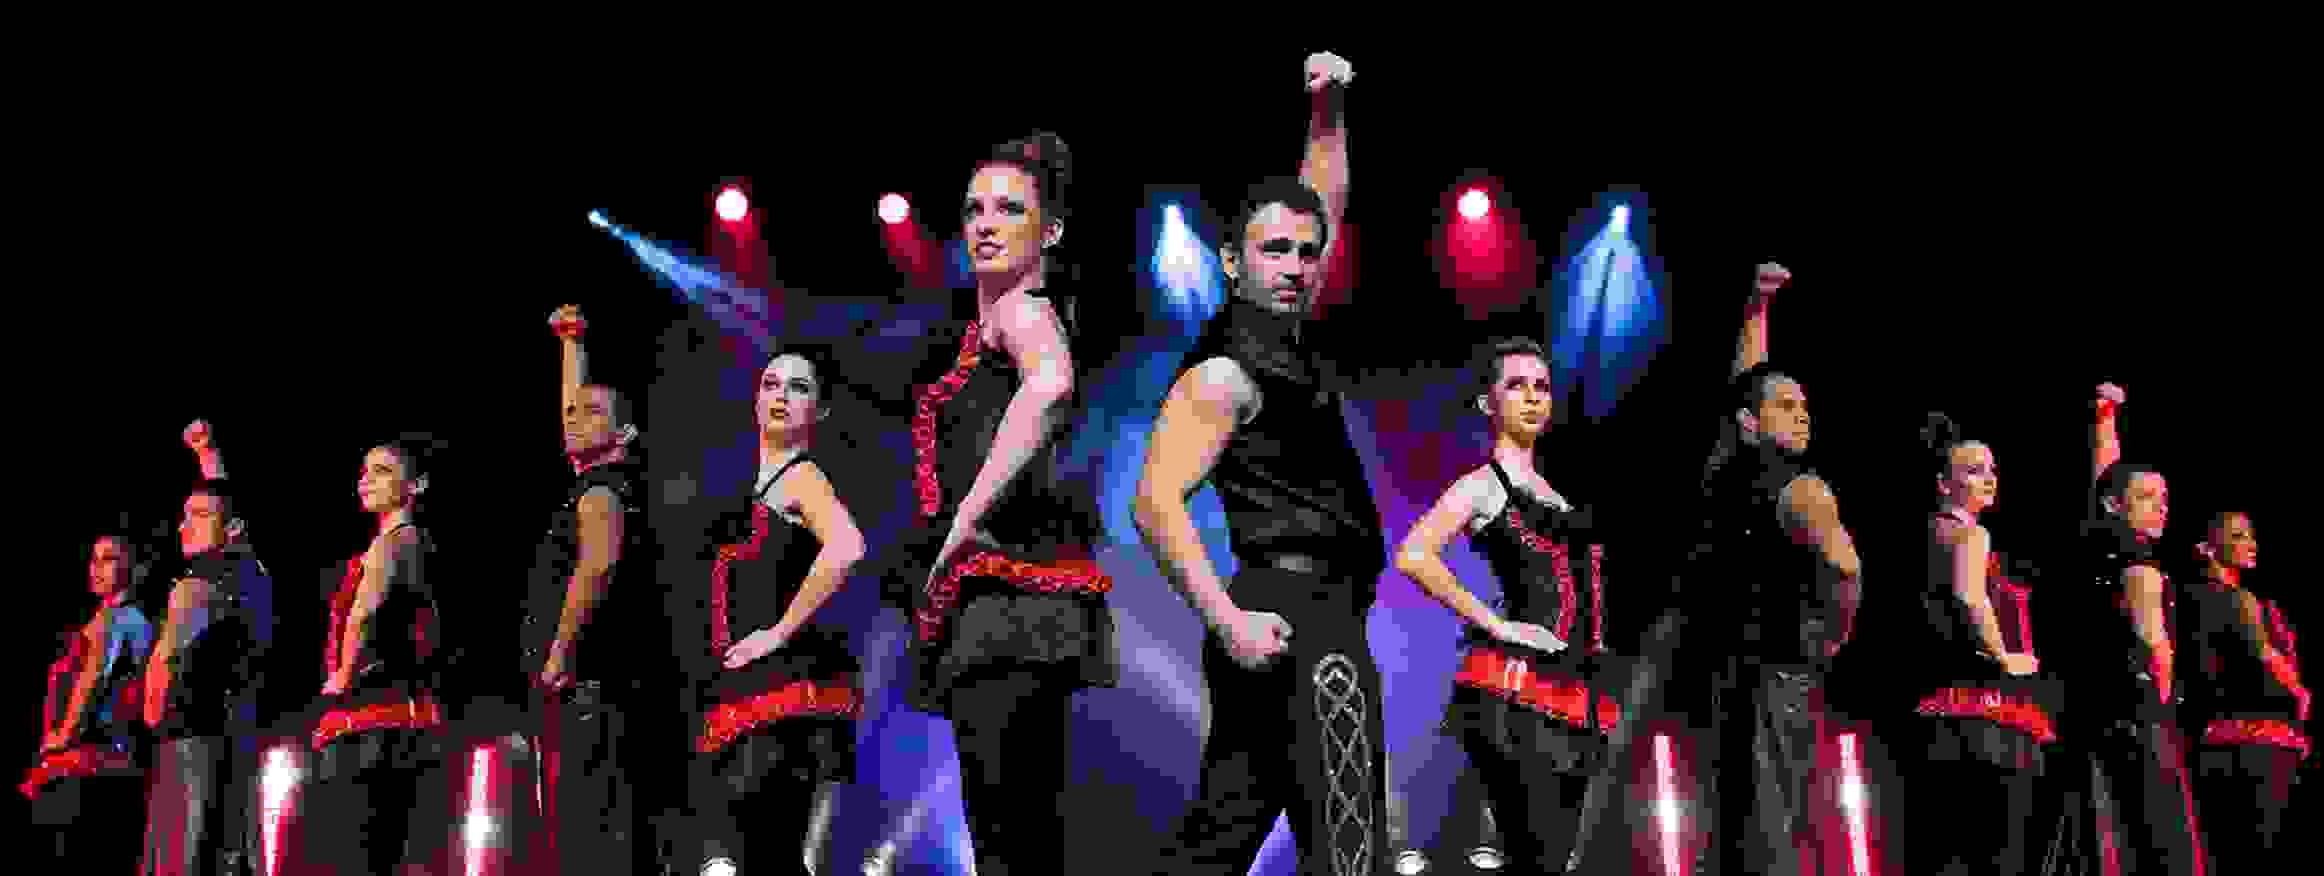 Night Of The Dance Gruppe1 Web